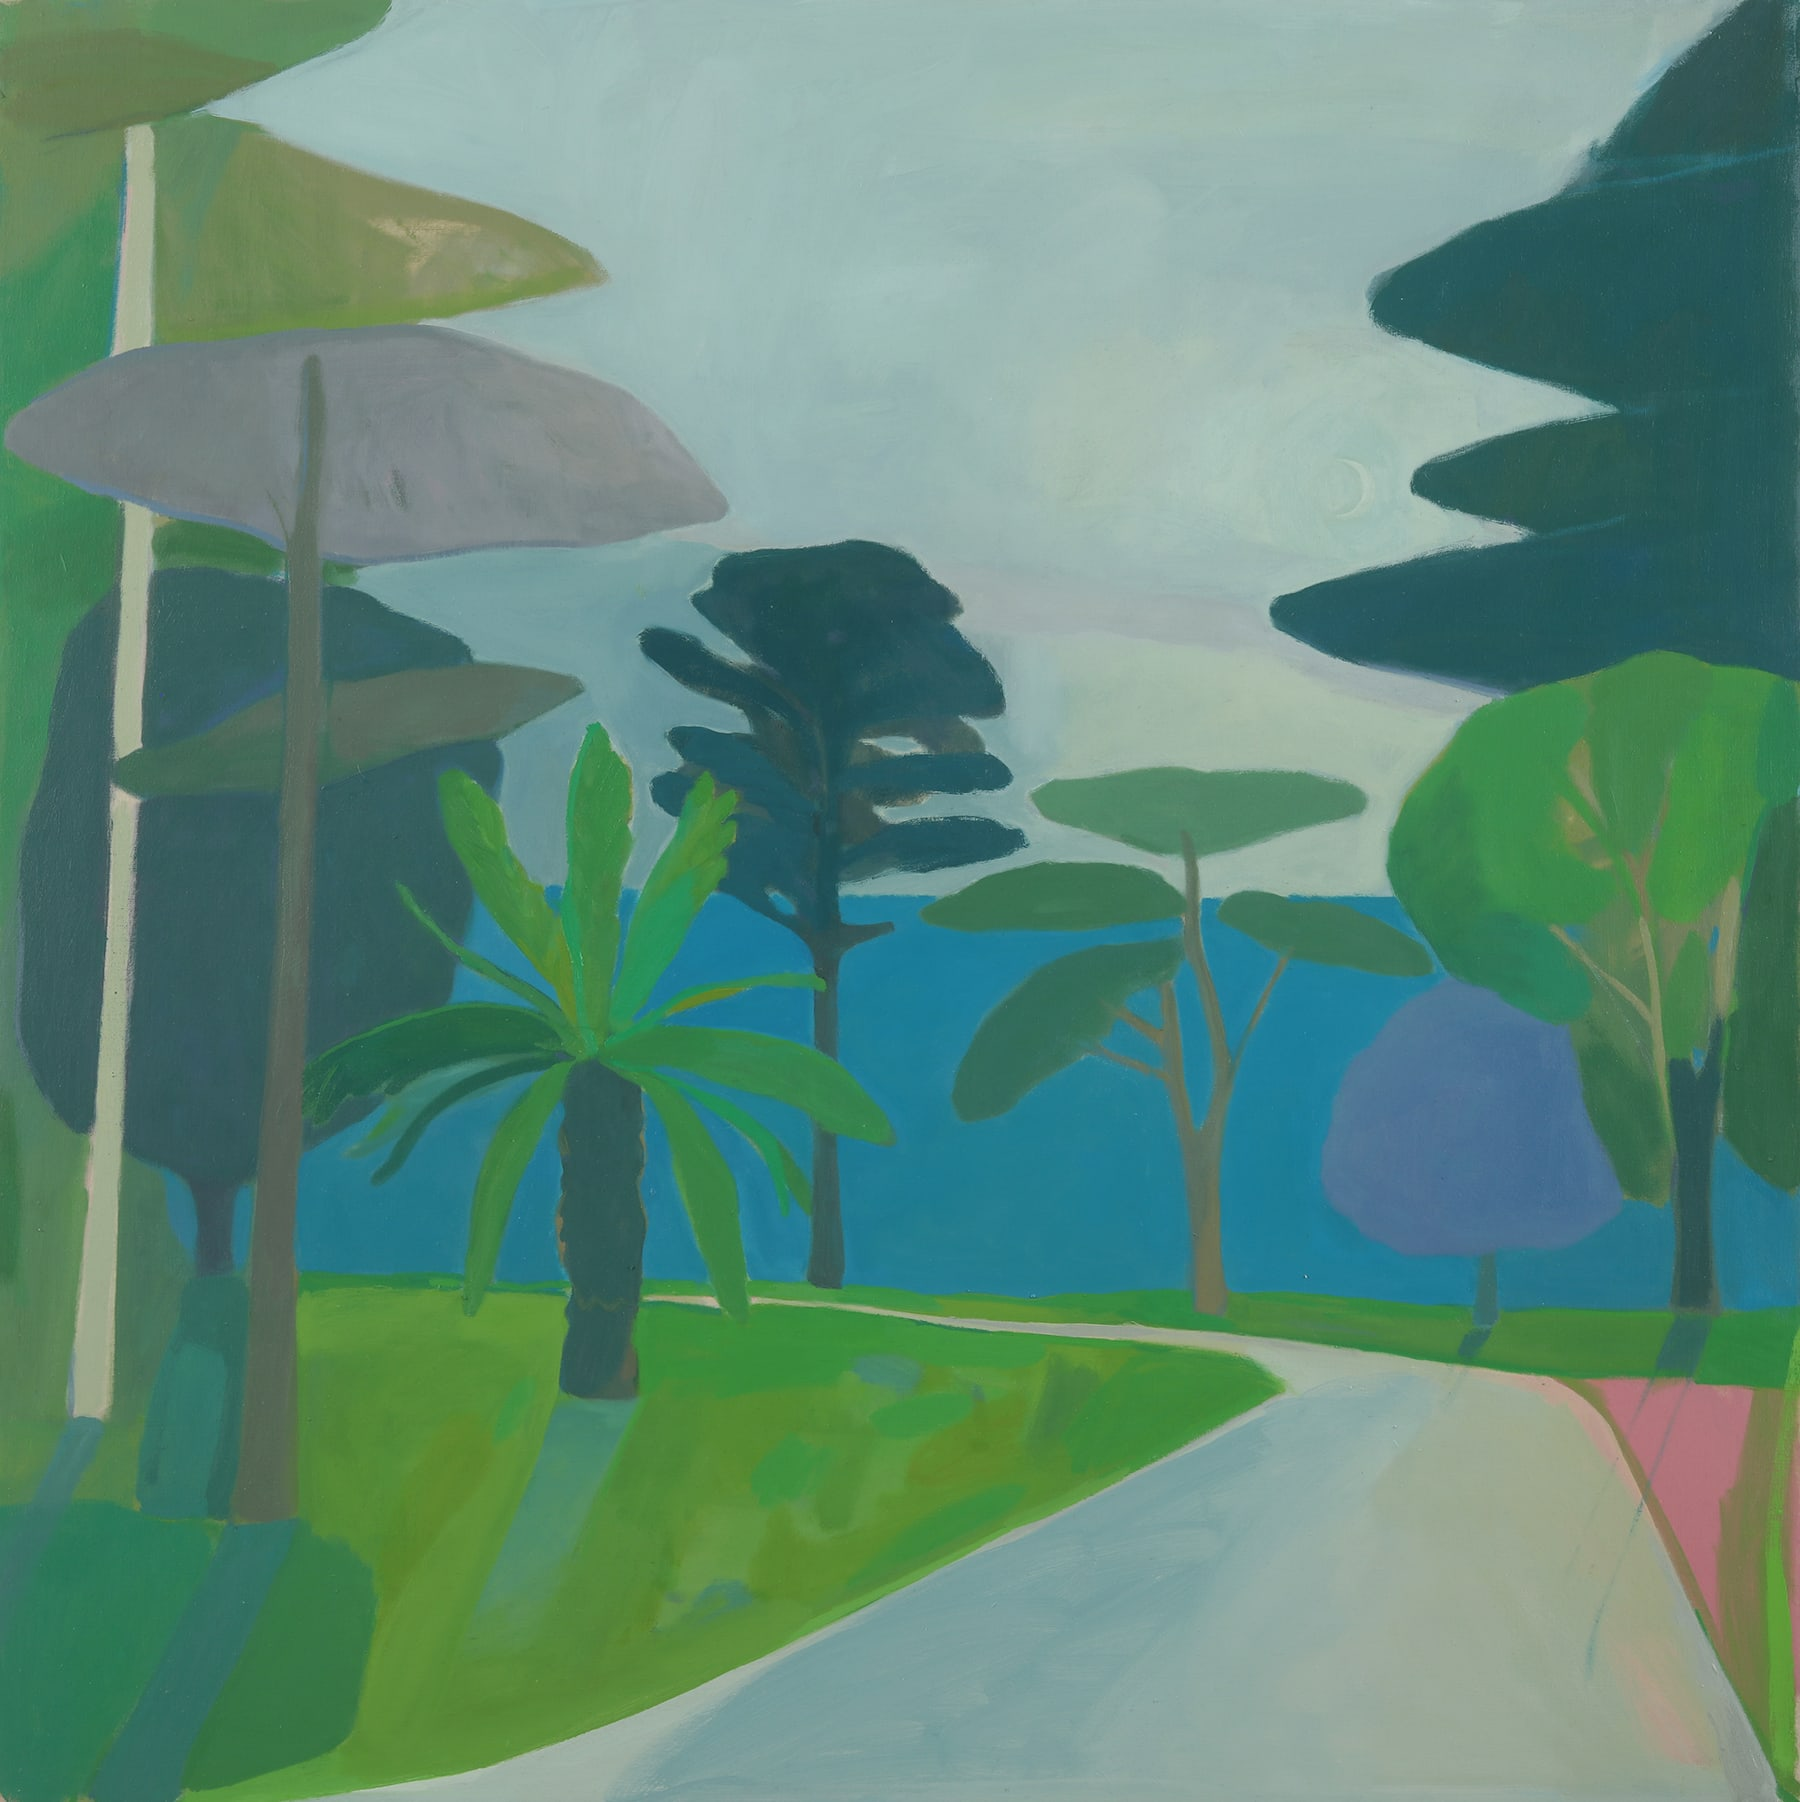 "<span class=""link fancybox-details-link""><a href=""/artists/40-karen-smidth/works/1349-karen-smidth-trees-in-the-pacific/"">View Detail Page</a></span><div class=""artist""><strong>Karen Smidth</strong></div> <div class=""title""><em>Trees in the Pacific</em></div> <div class=""medium"">Oil on linen</div> <div class=""dimensions"">40 x 40 inches</div>"